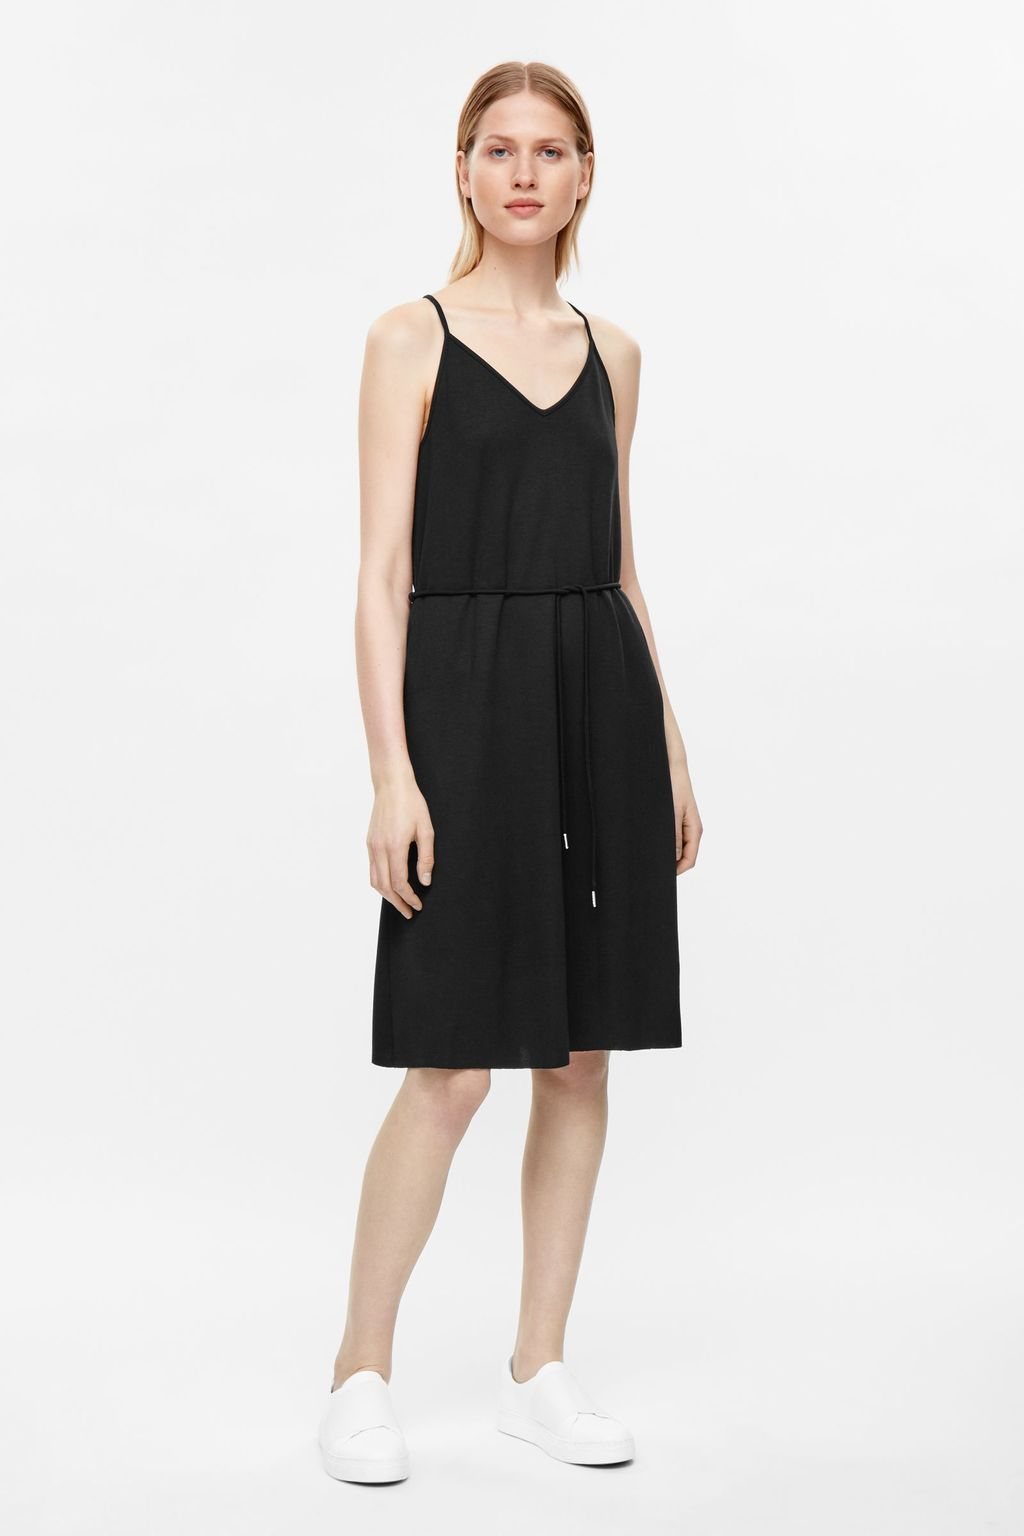 Slip Dress With Tie - neckline: low v-neck; sleeve style: spaghetti straps; pattern: plain; predominant colour: black; occasions: casual; length: on the knee; fit: body skimming; style: slip dress; fibres: viscose/rayon - stretch; sleeve length: sleeveless; pattern type: fabric; texture group: other - light to midweight; season: s/s 2016